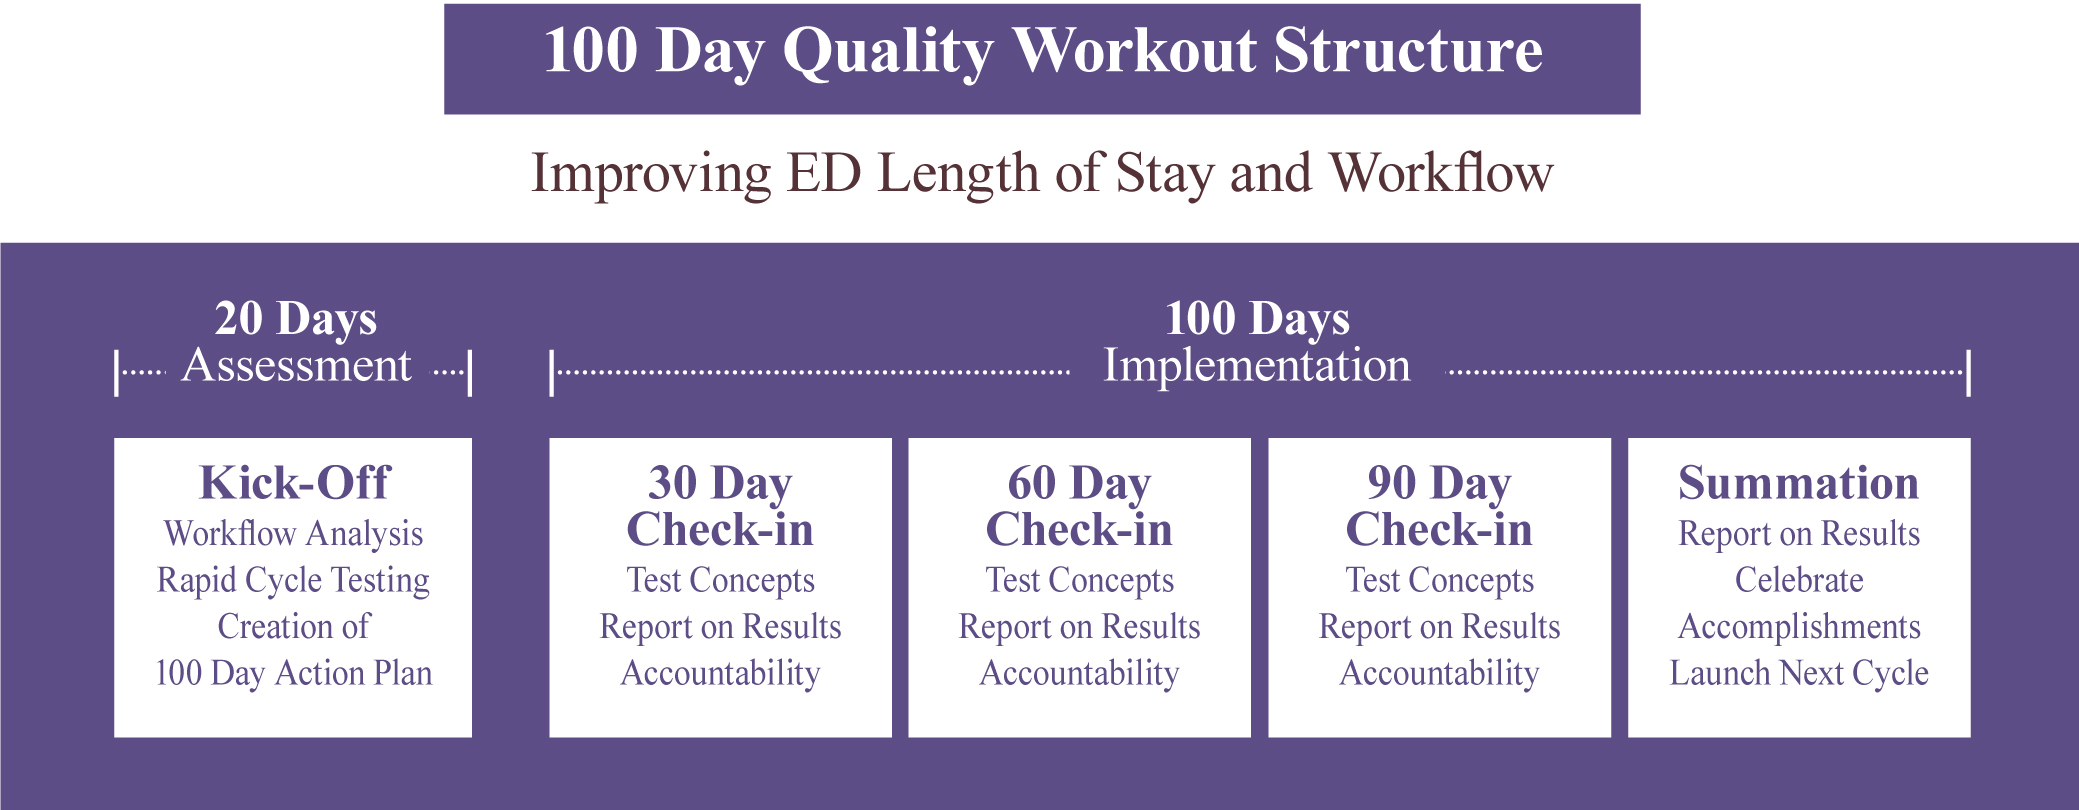 100 Day Quality Workout Structure